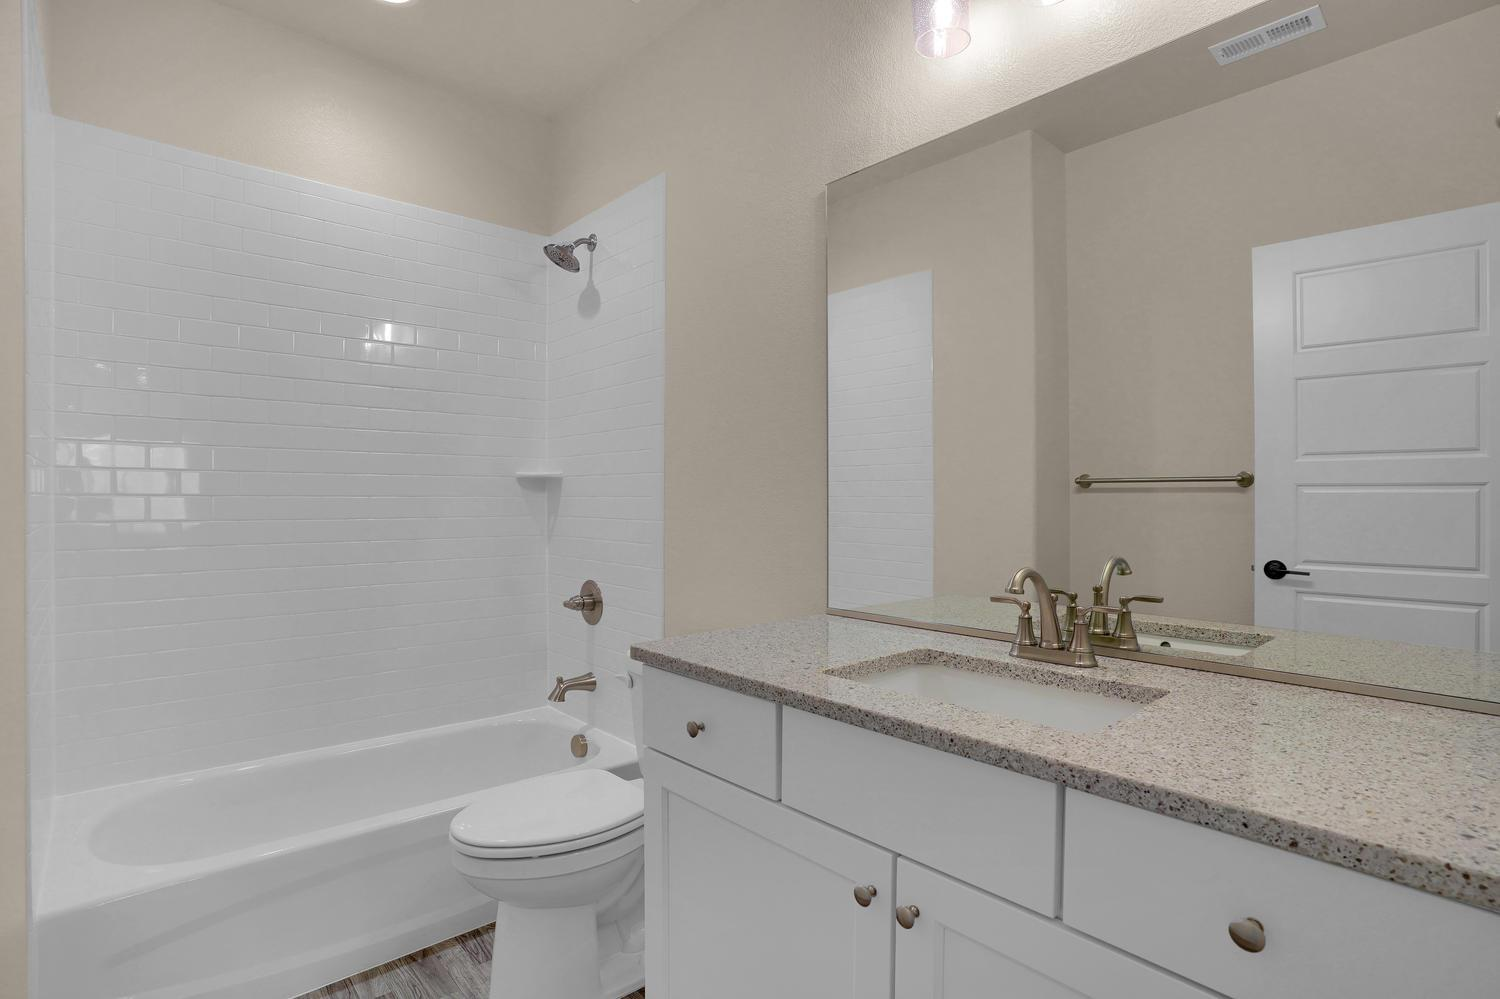 Bathroom featured in the Princeton By Keller Homes, A Toll Bros. Co. in Colorado Springs, CO